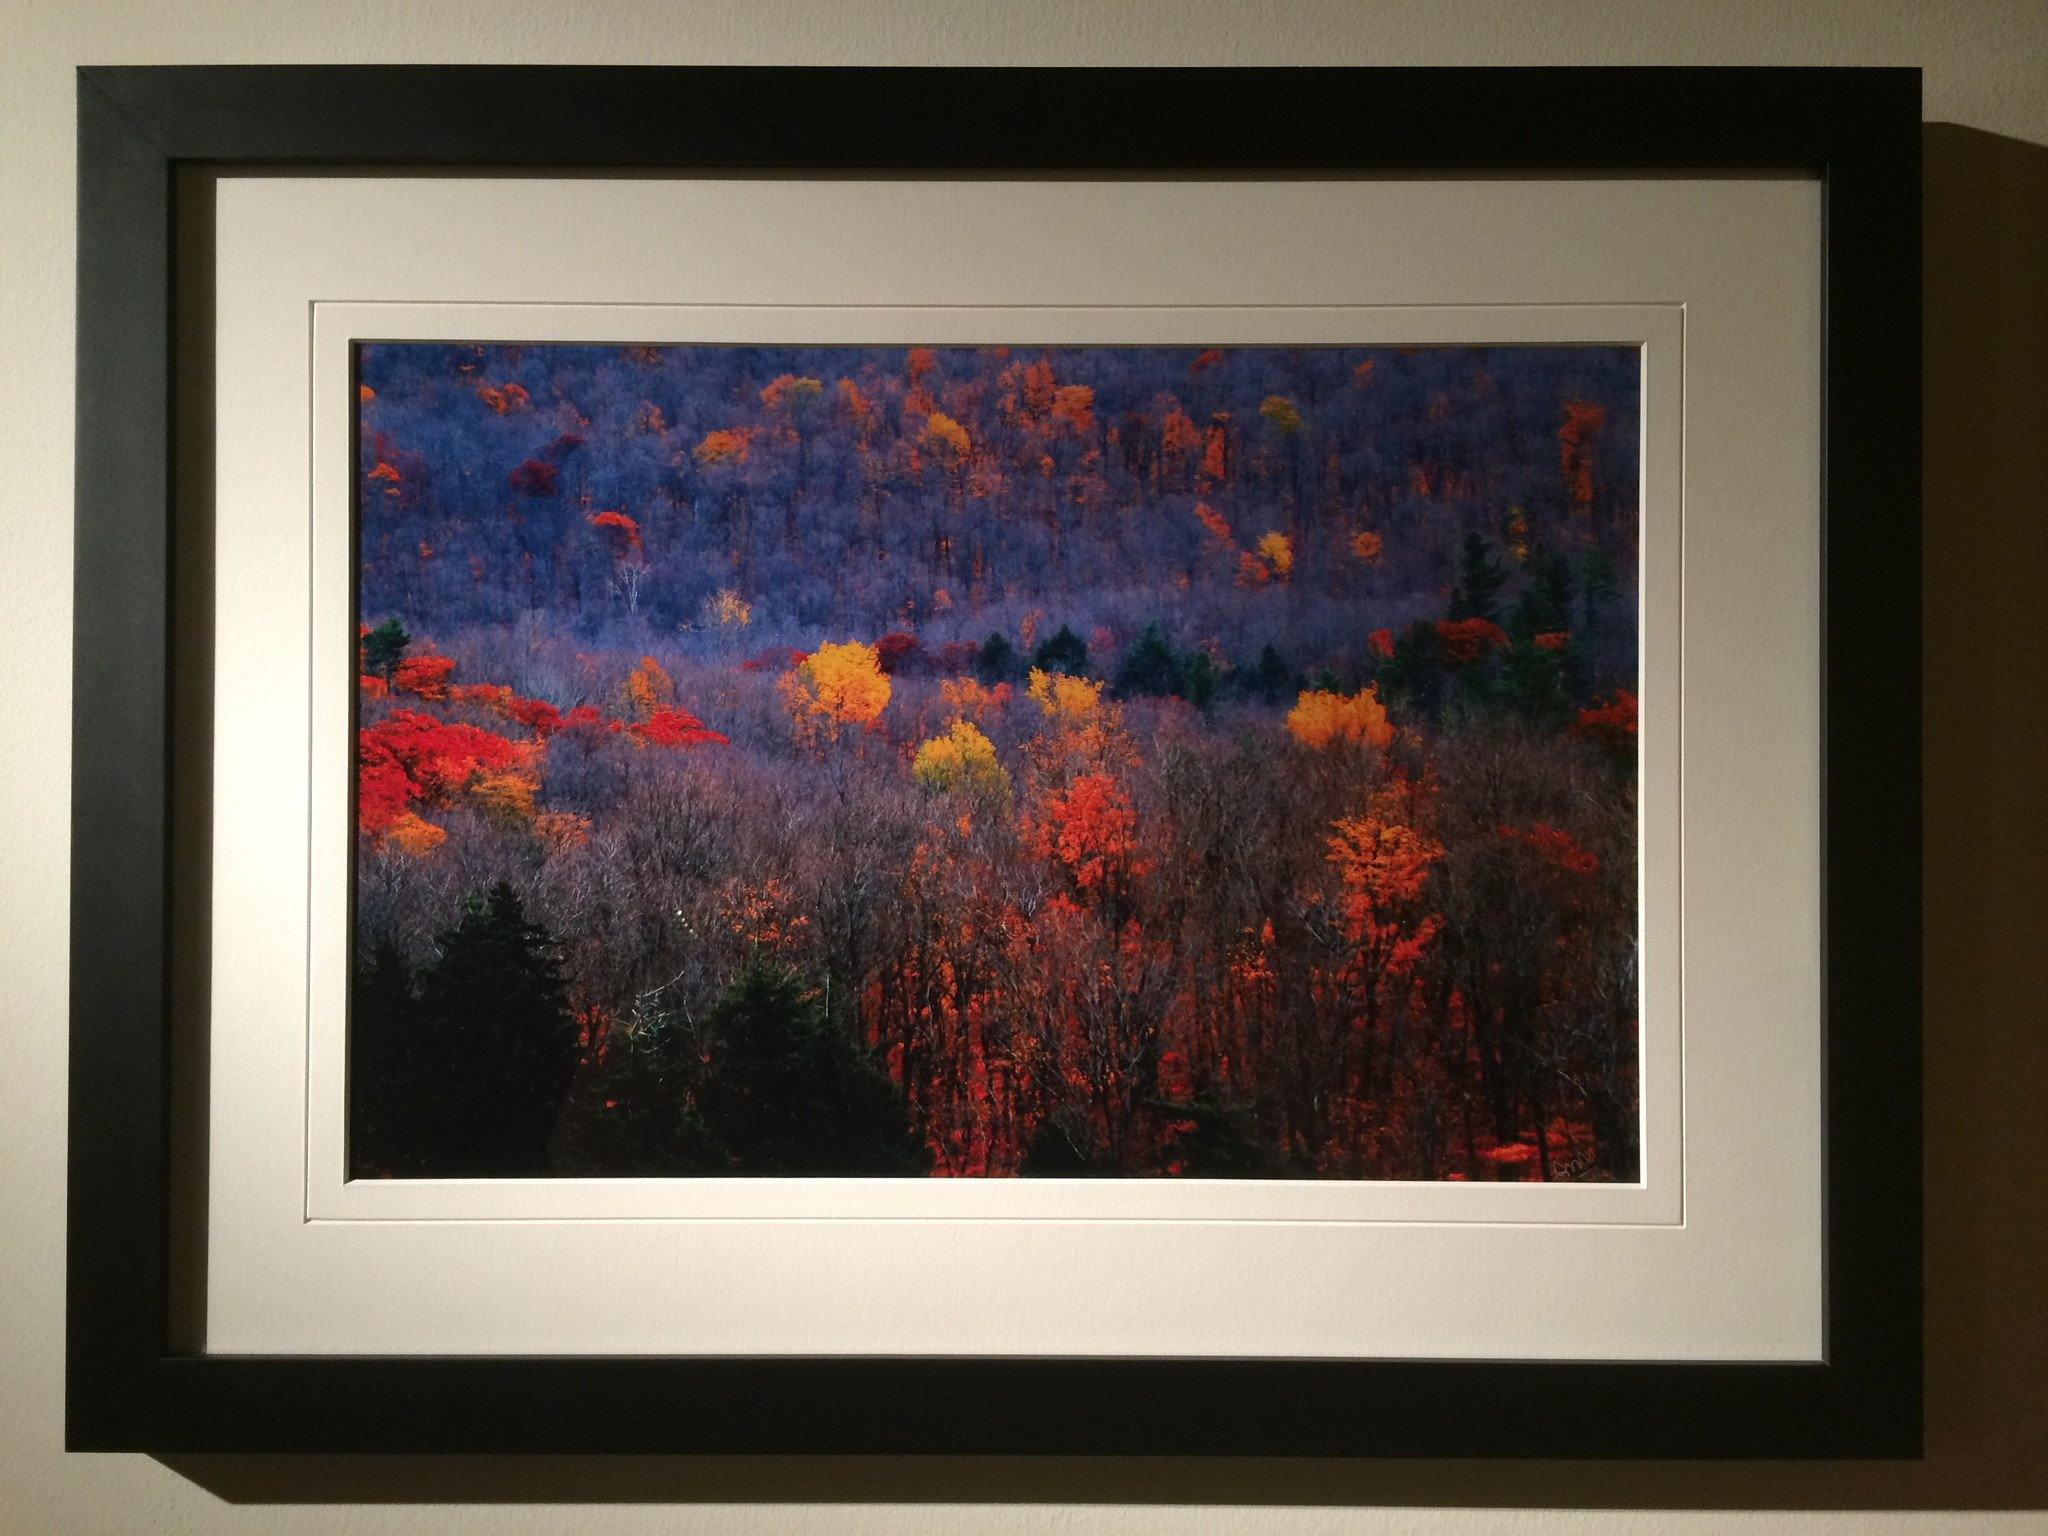 Fall Colors - Framed Print - Andrew Moor Photography